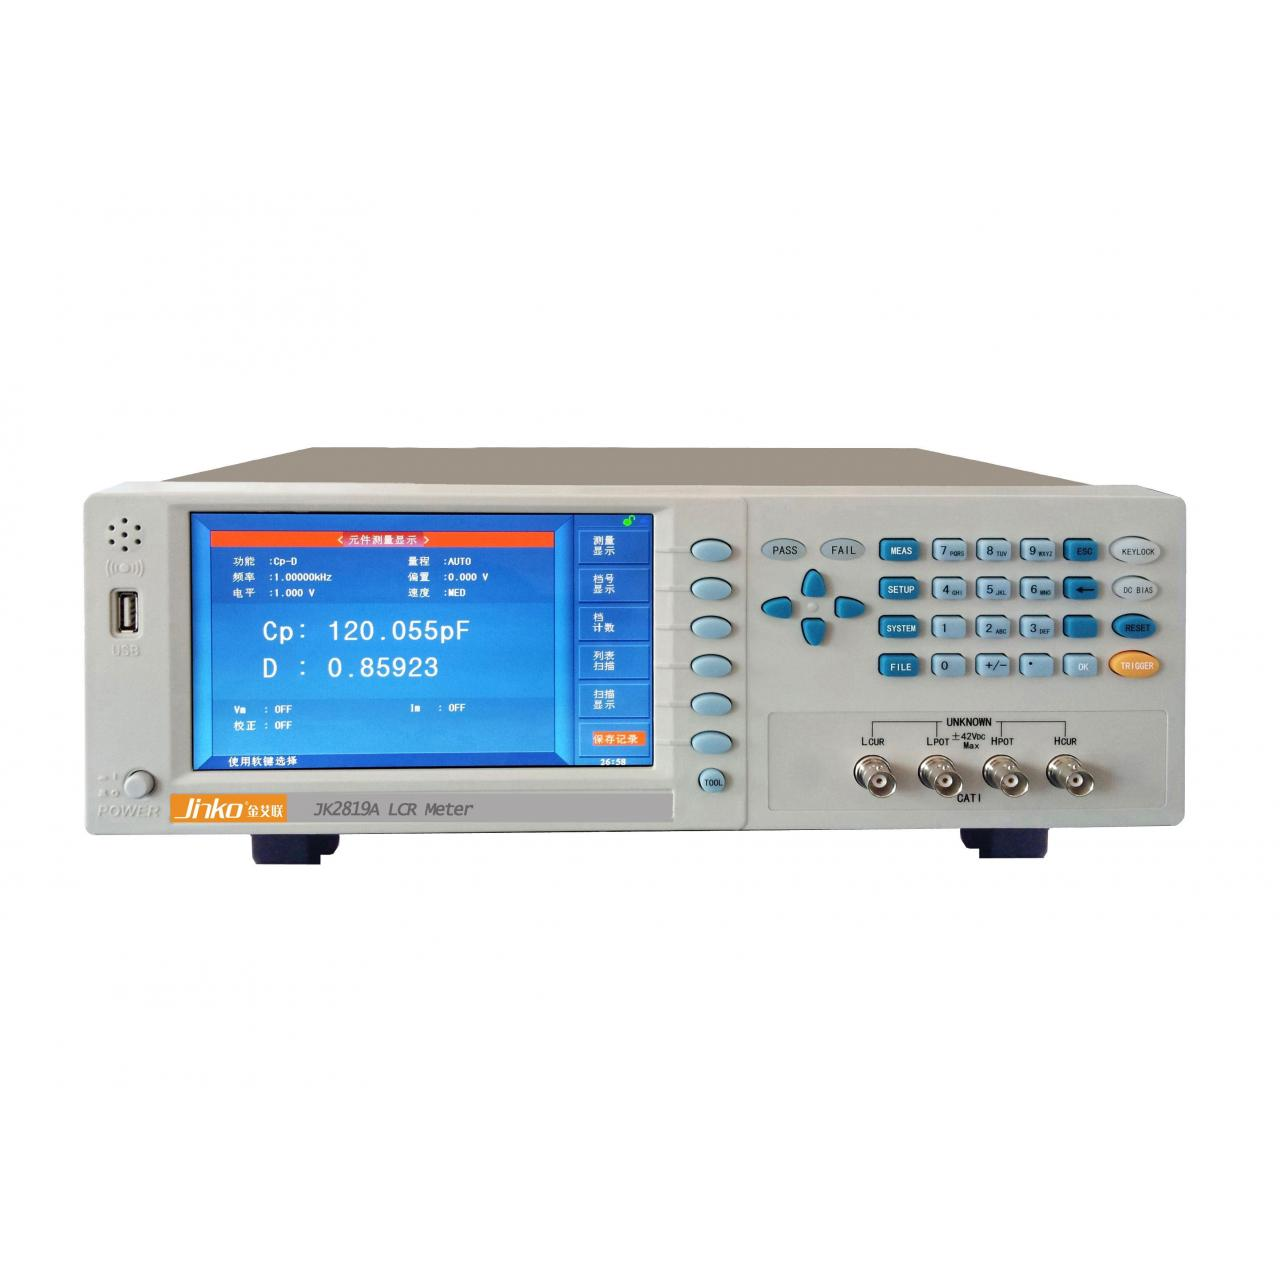 Cheap JK2819 Lcr Meter for sale